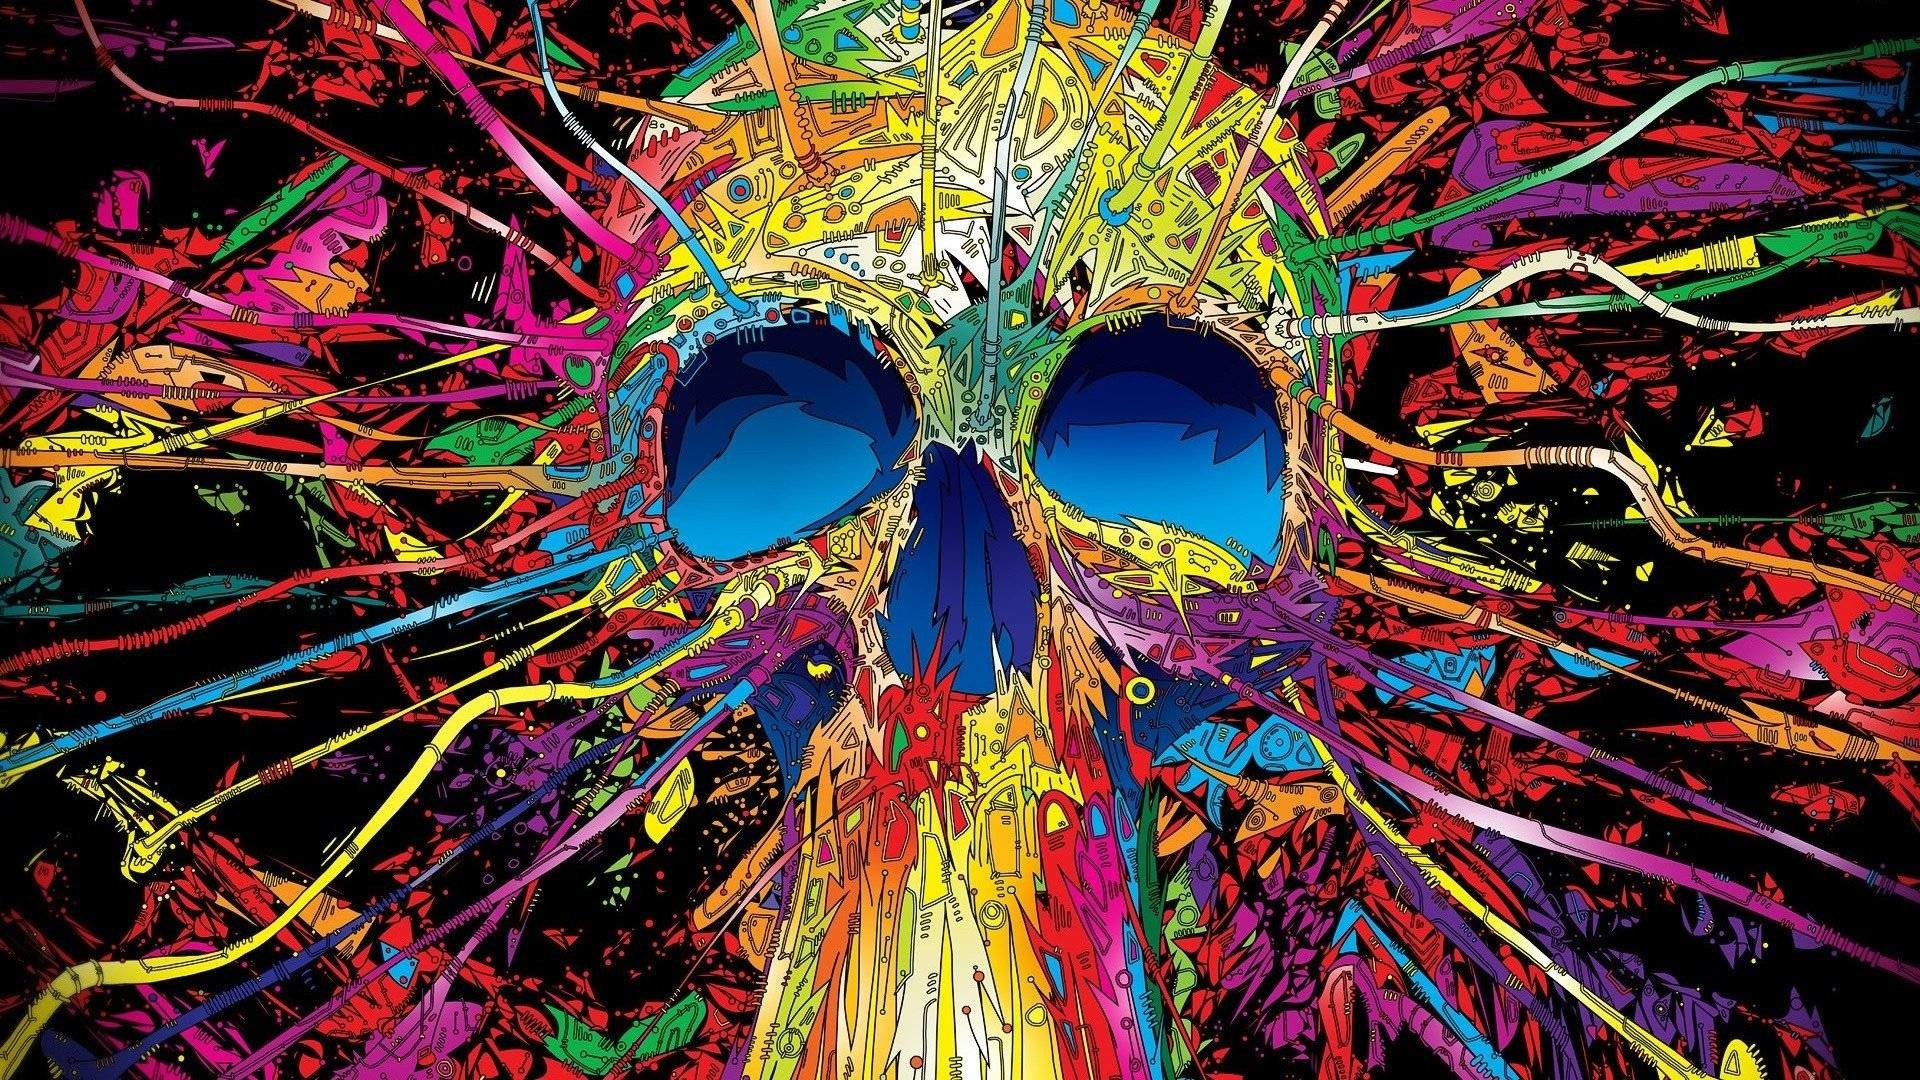 Acid Trip Backgrounds Wallpaper px Free Download .